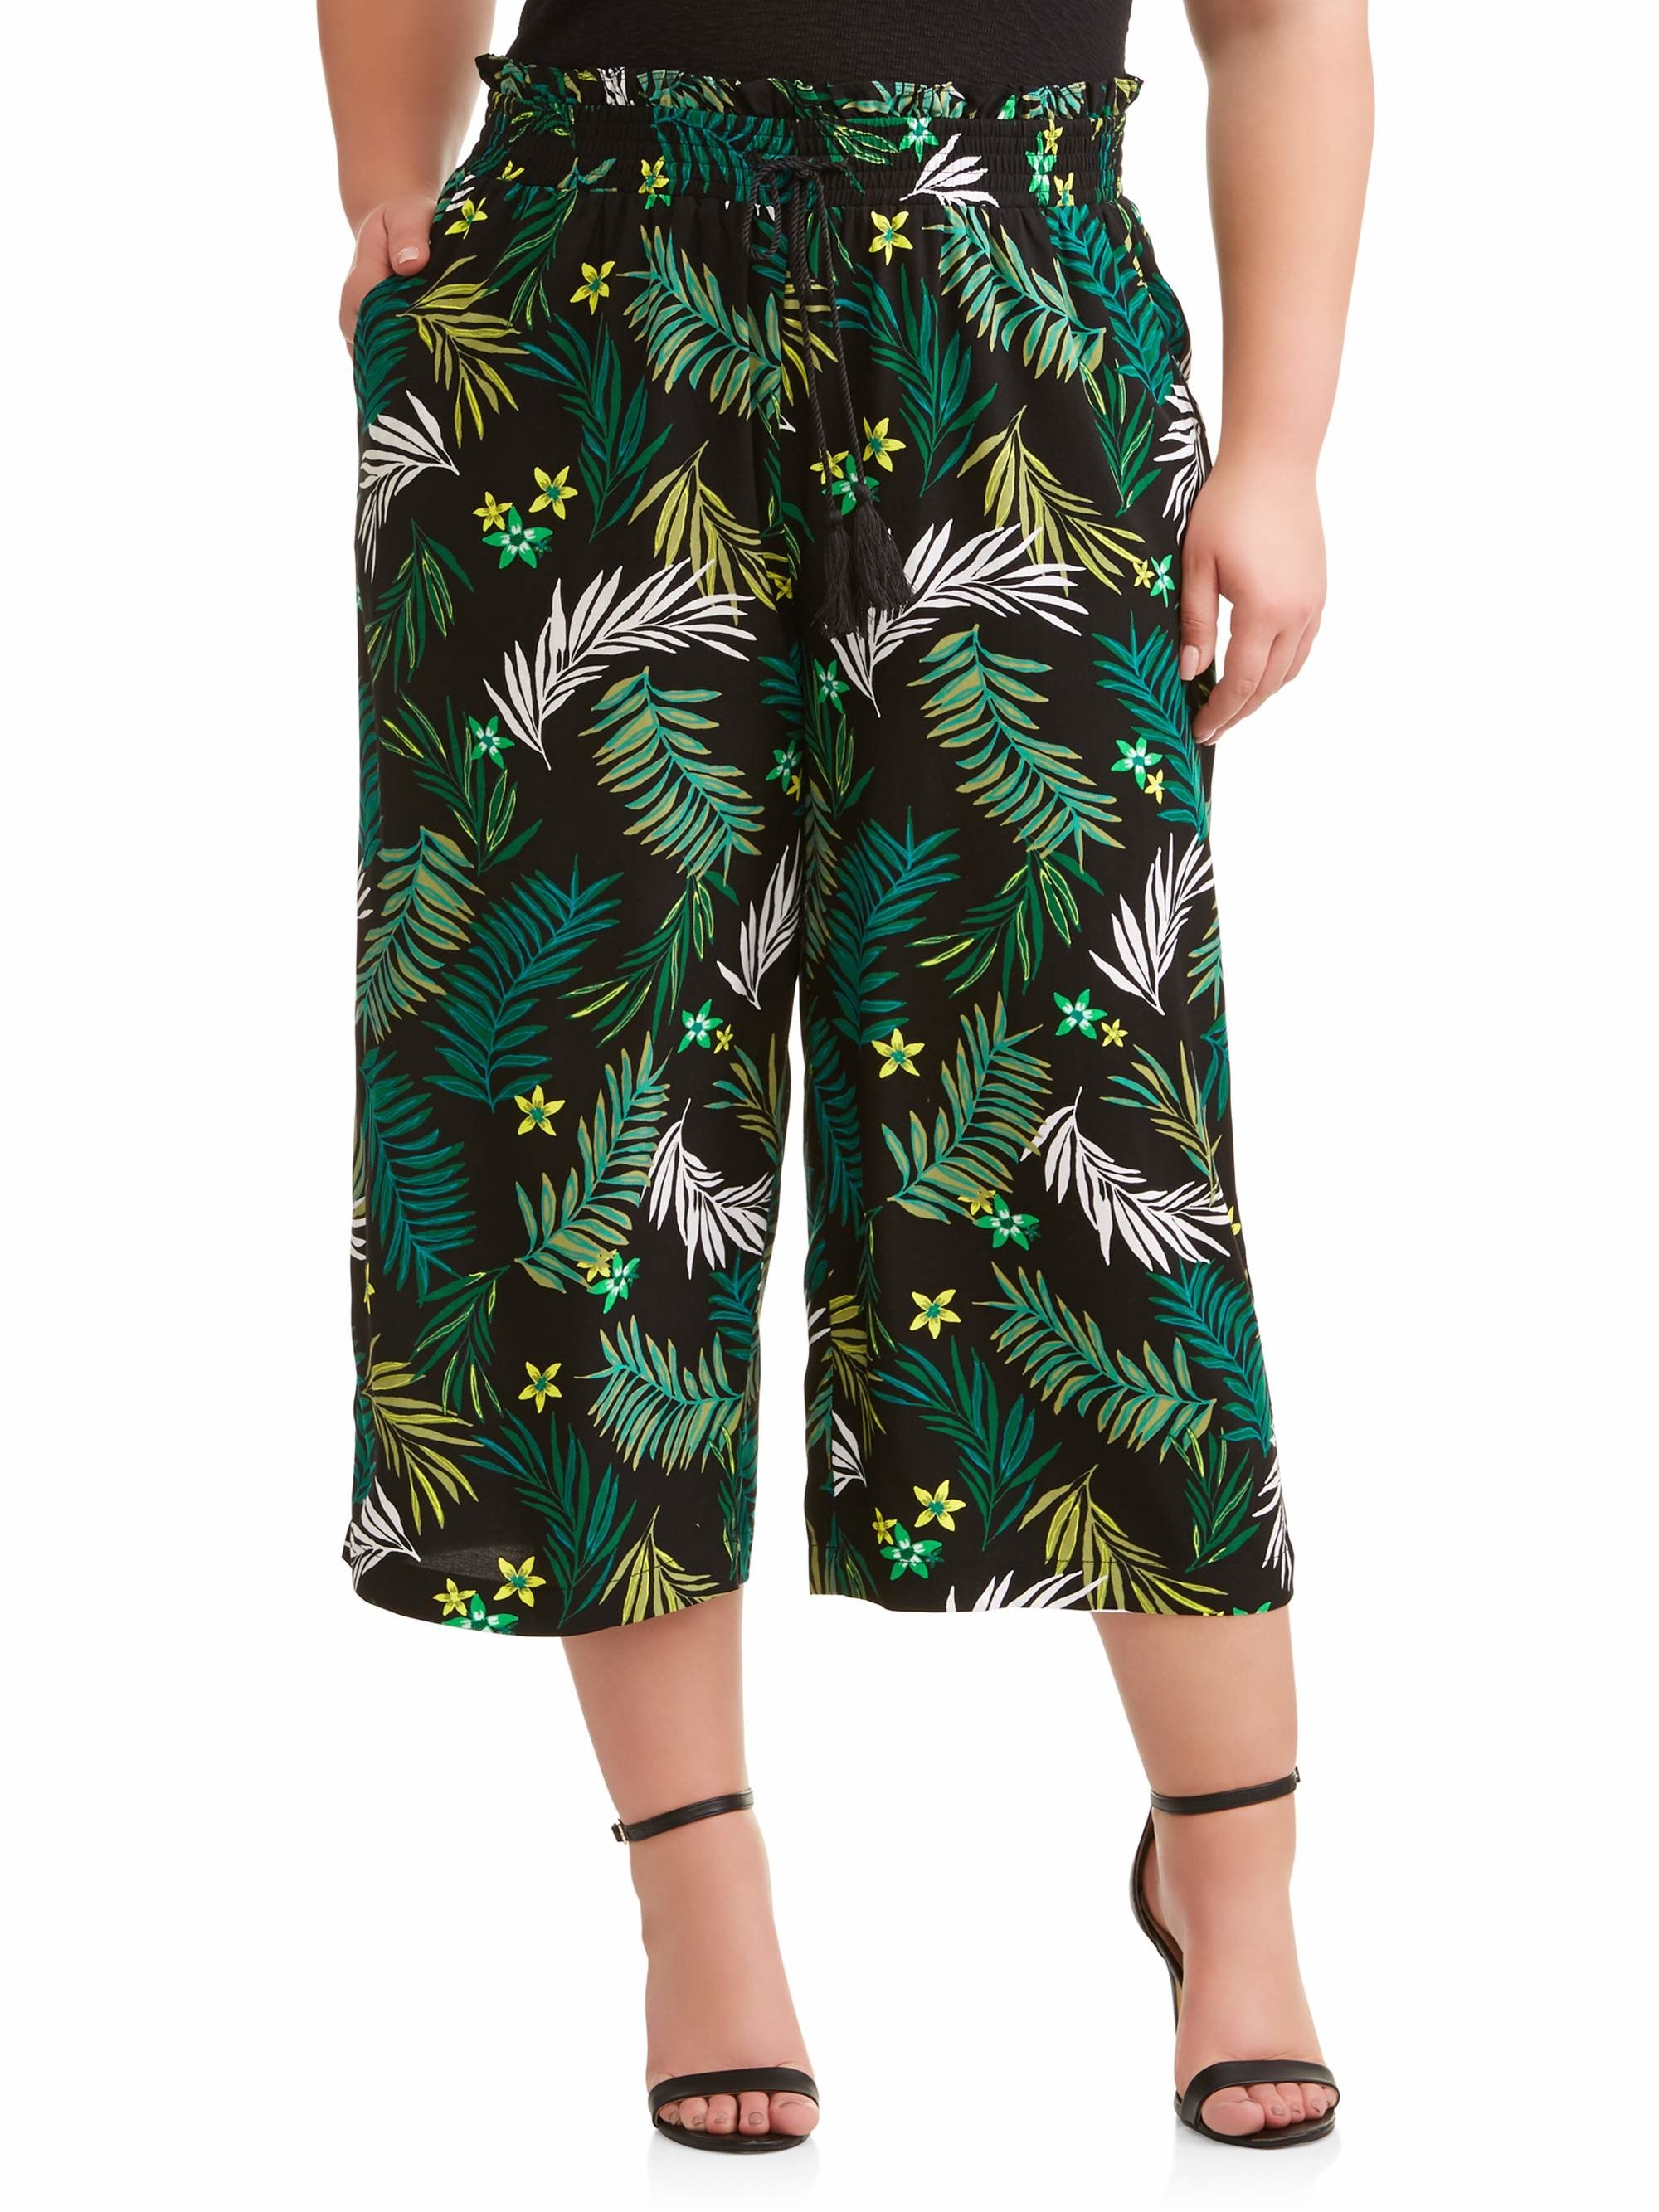 person wearing black flowy pants with a tropical print on them